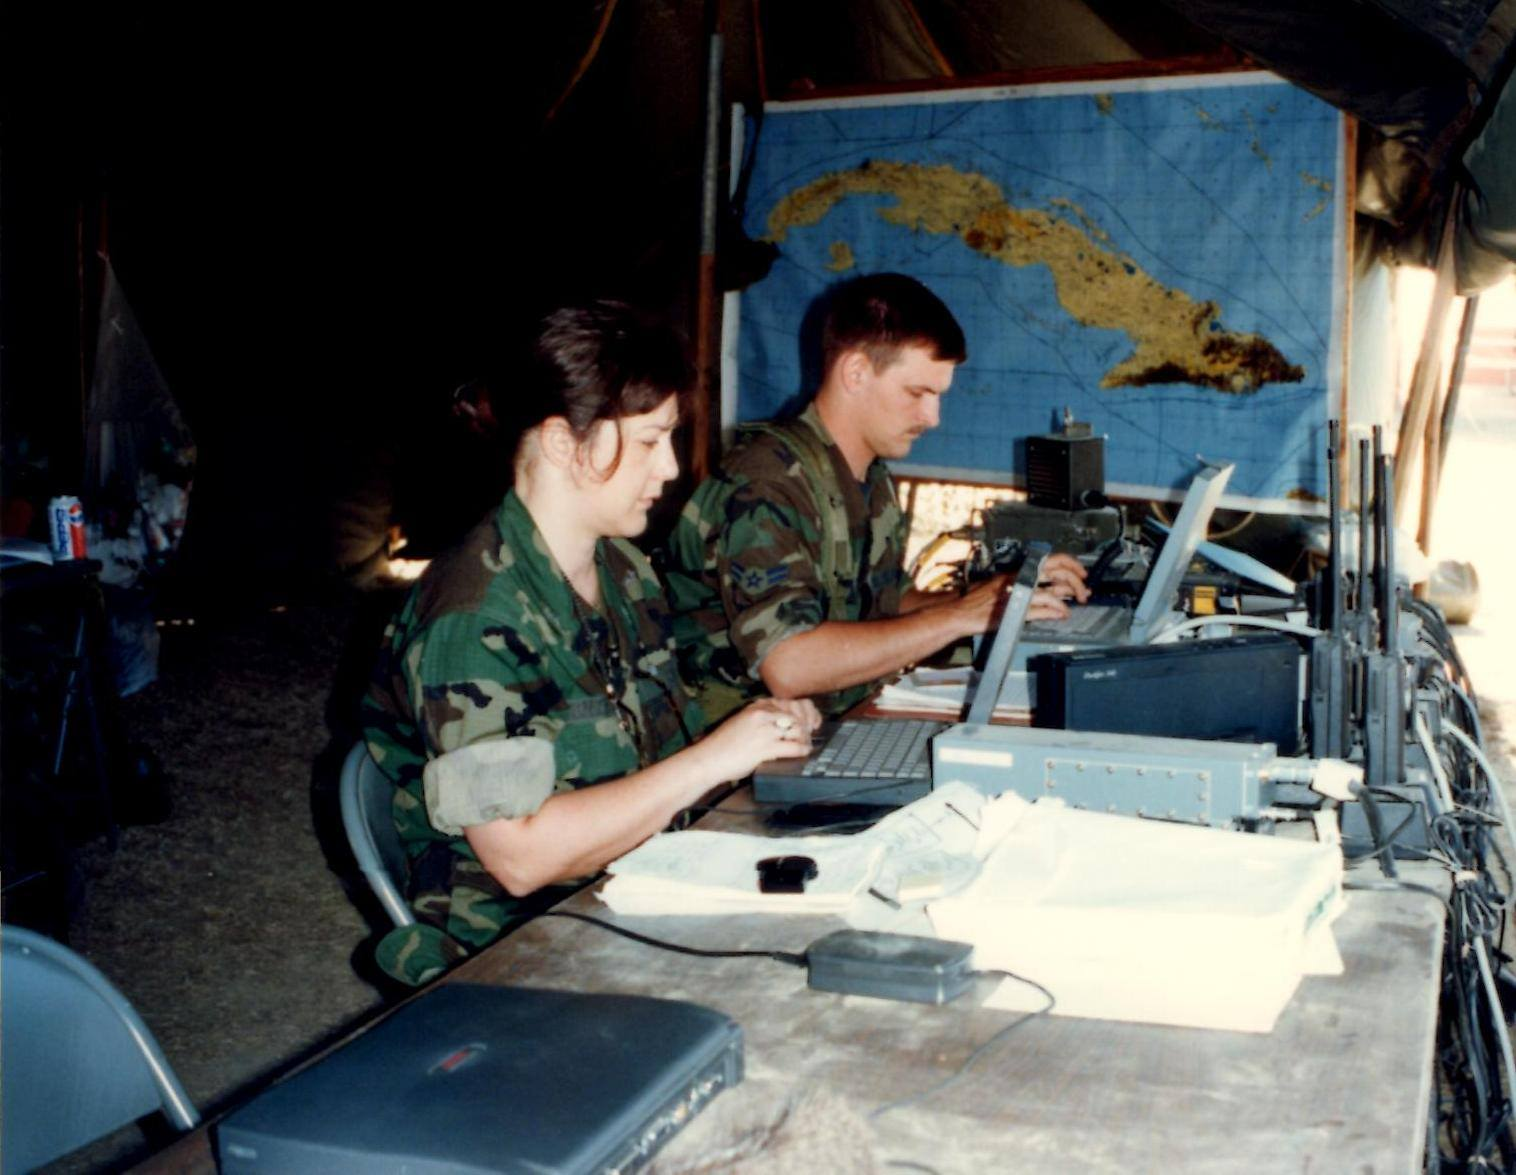 Working during an exercise at U.S. Naval Station Guantanamo Bay, Cuba in 1997. Photo credit: Iris Gonzalez